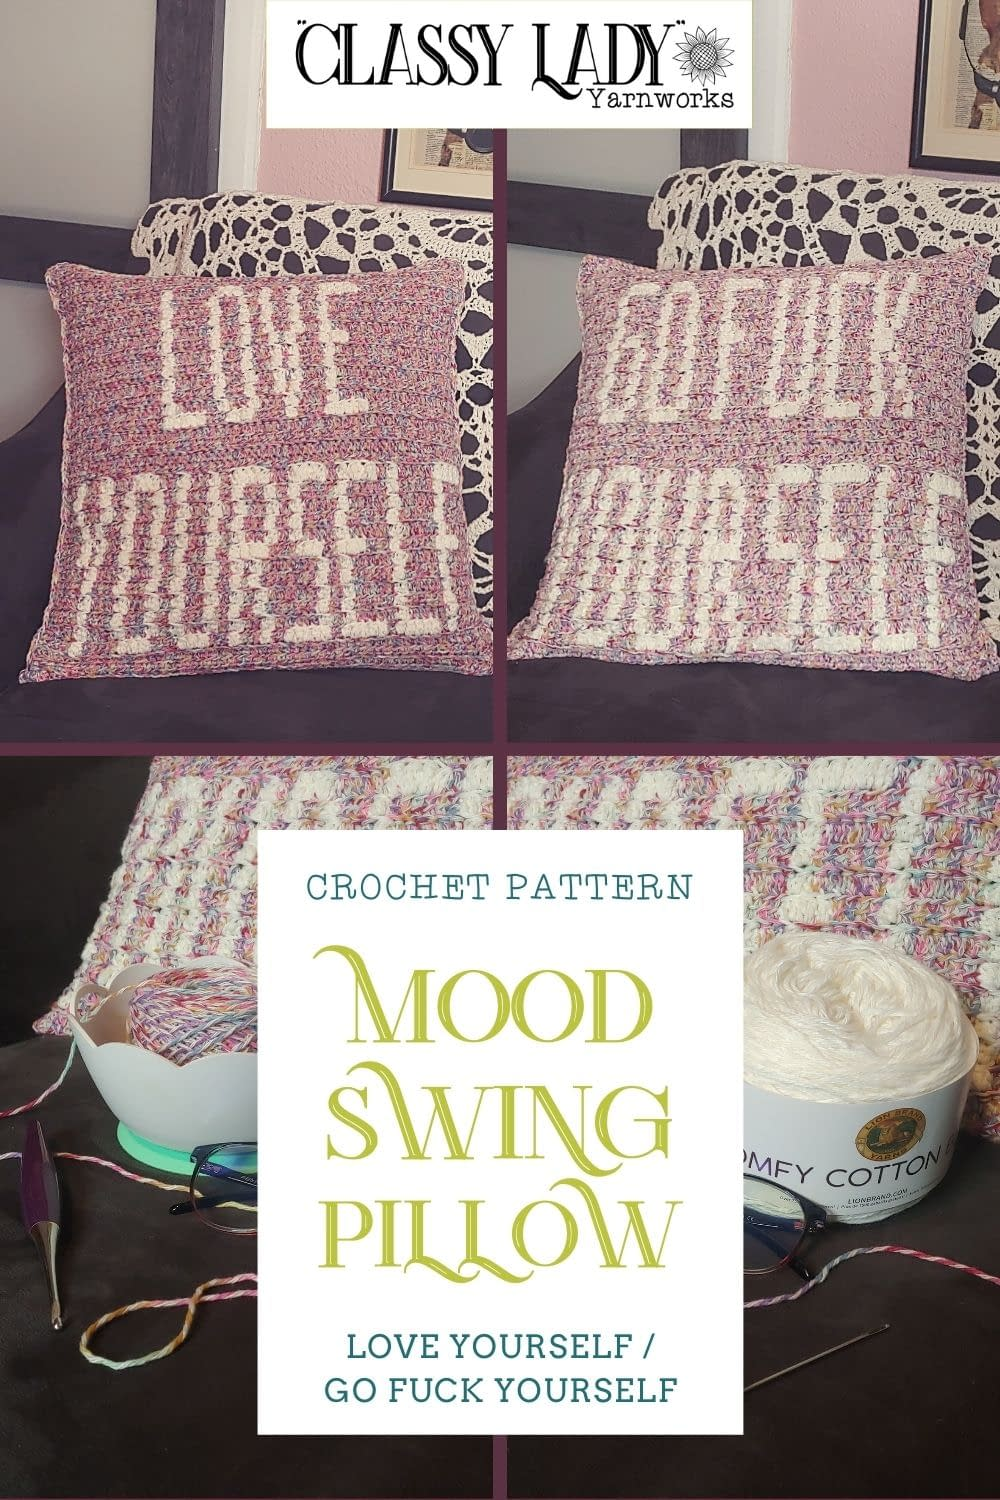 """Collage of images that depict a reversible pillow that states """"Love Yourself"""" on one side and """"Go Fuck Yourself"""" on the other side, representative of a crochet pattern available from Classy Lady Yarnworks."""